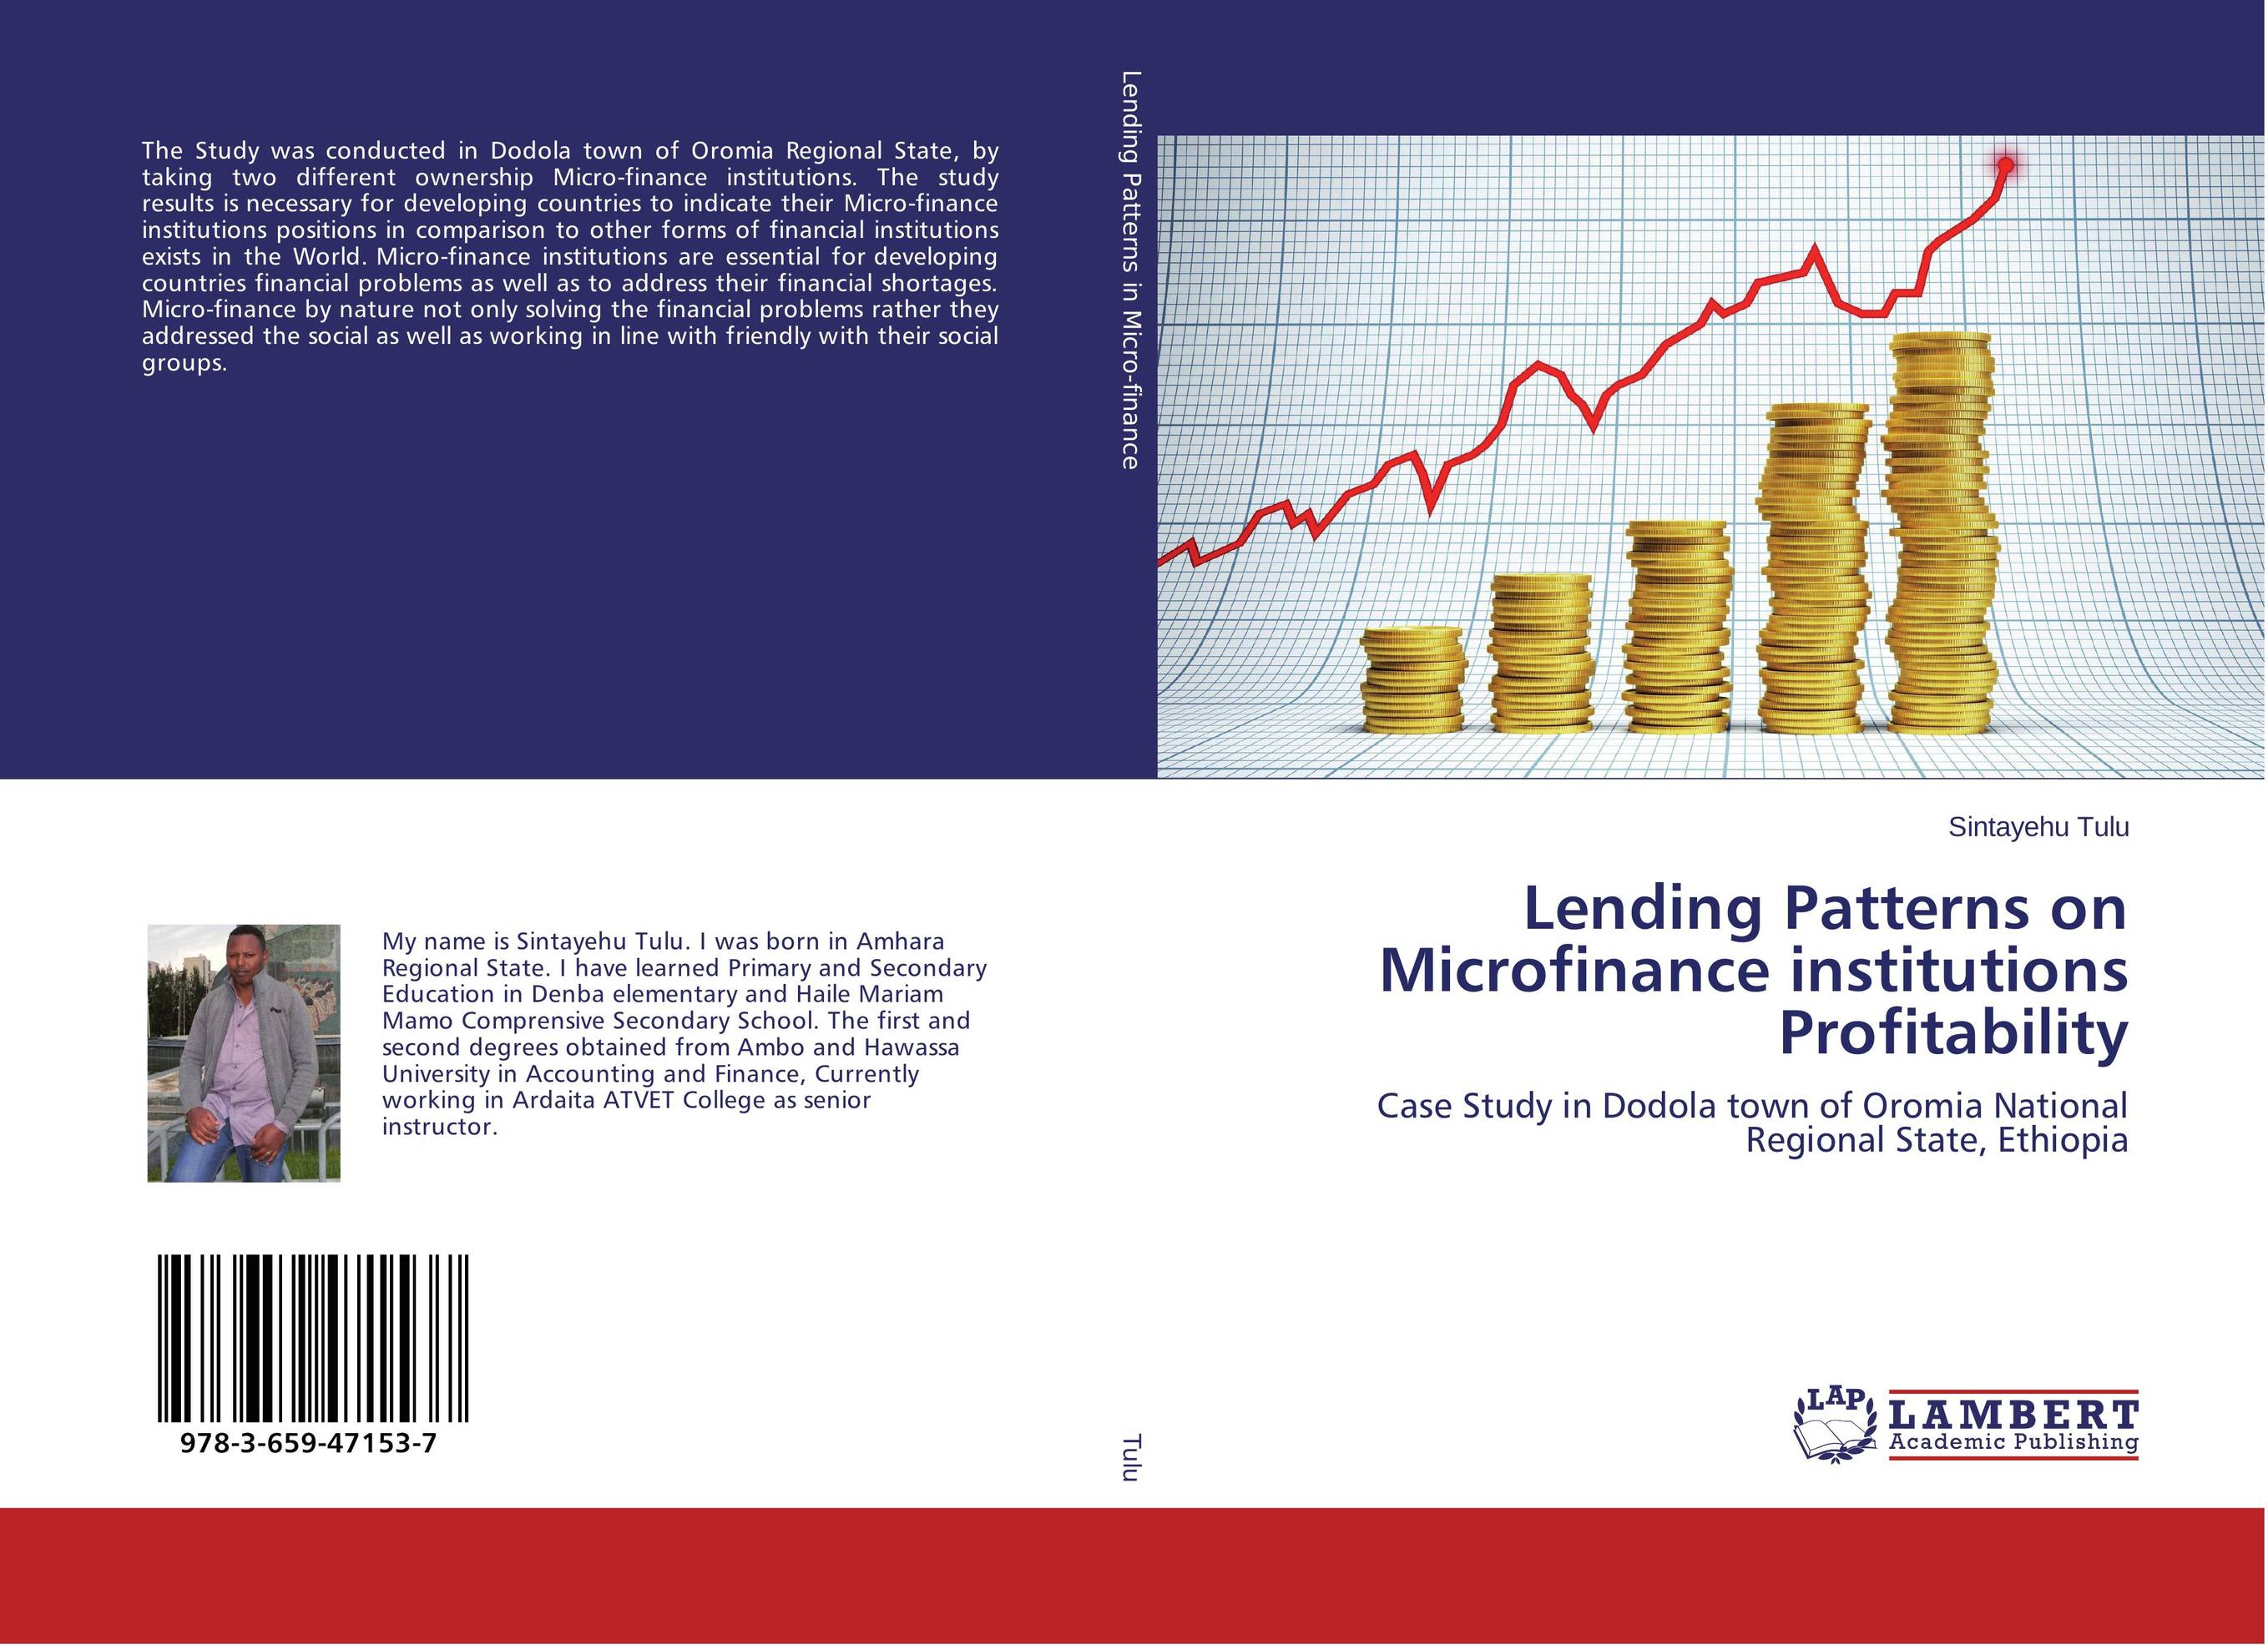 Lending Patterns on Microfinance institutions Profitability